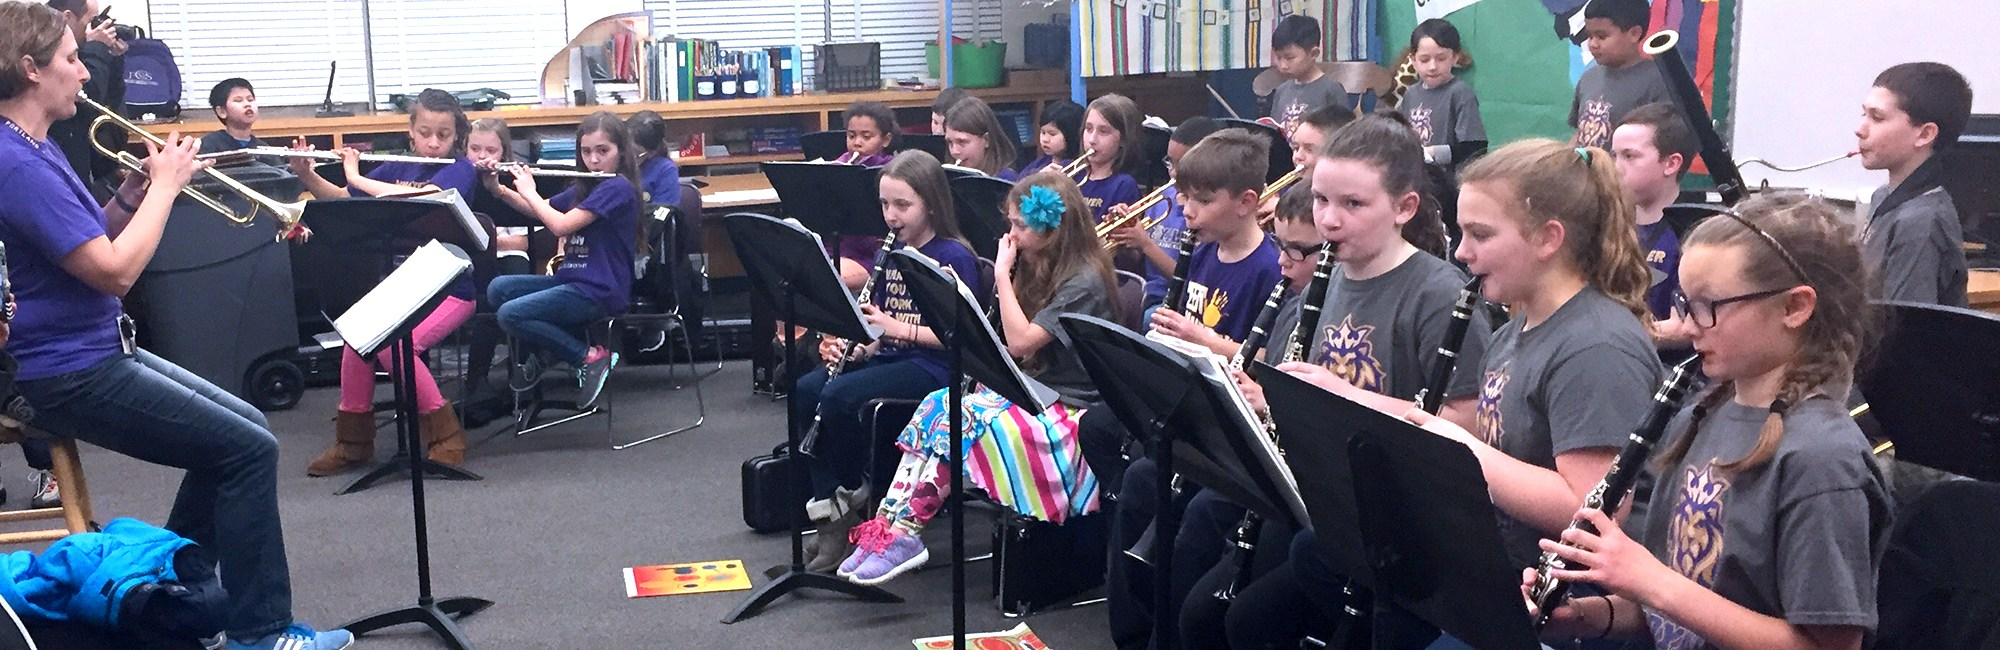 Elementary band students perform at student showcase